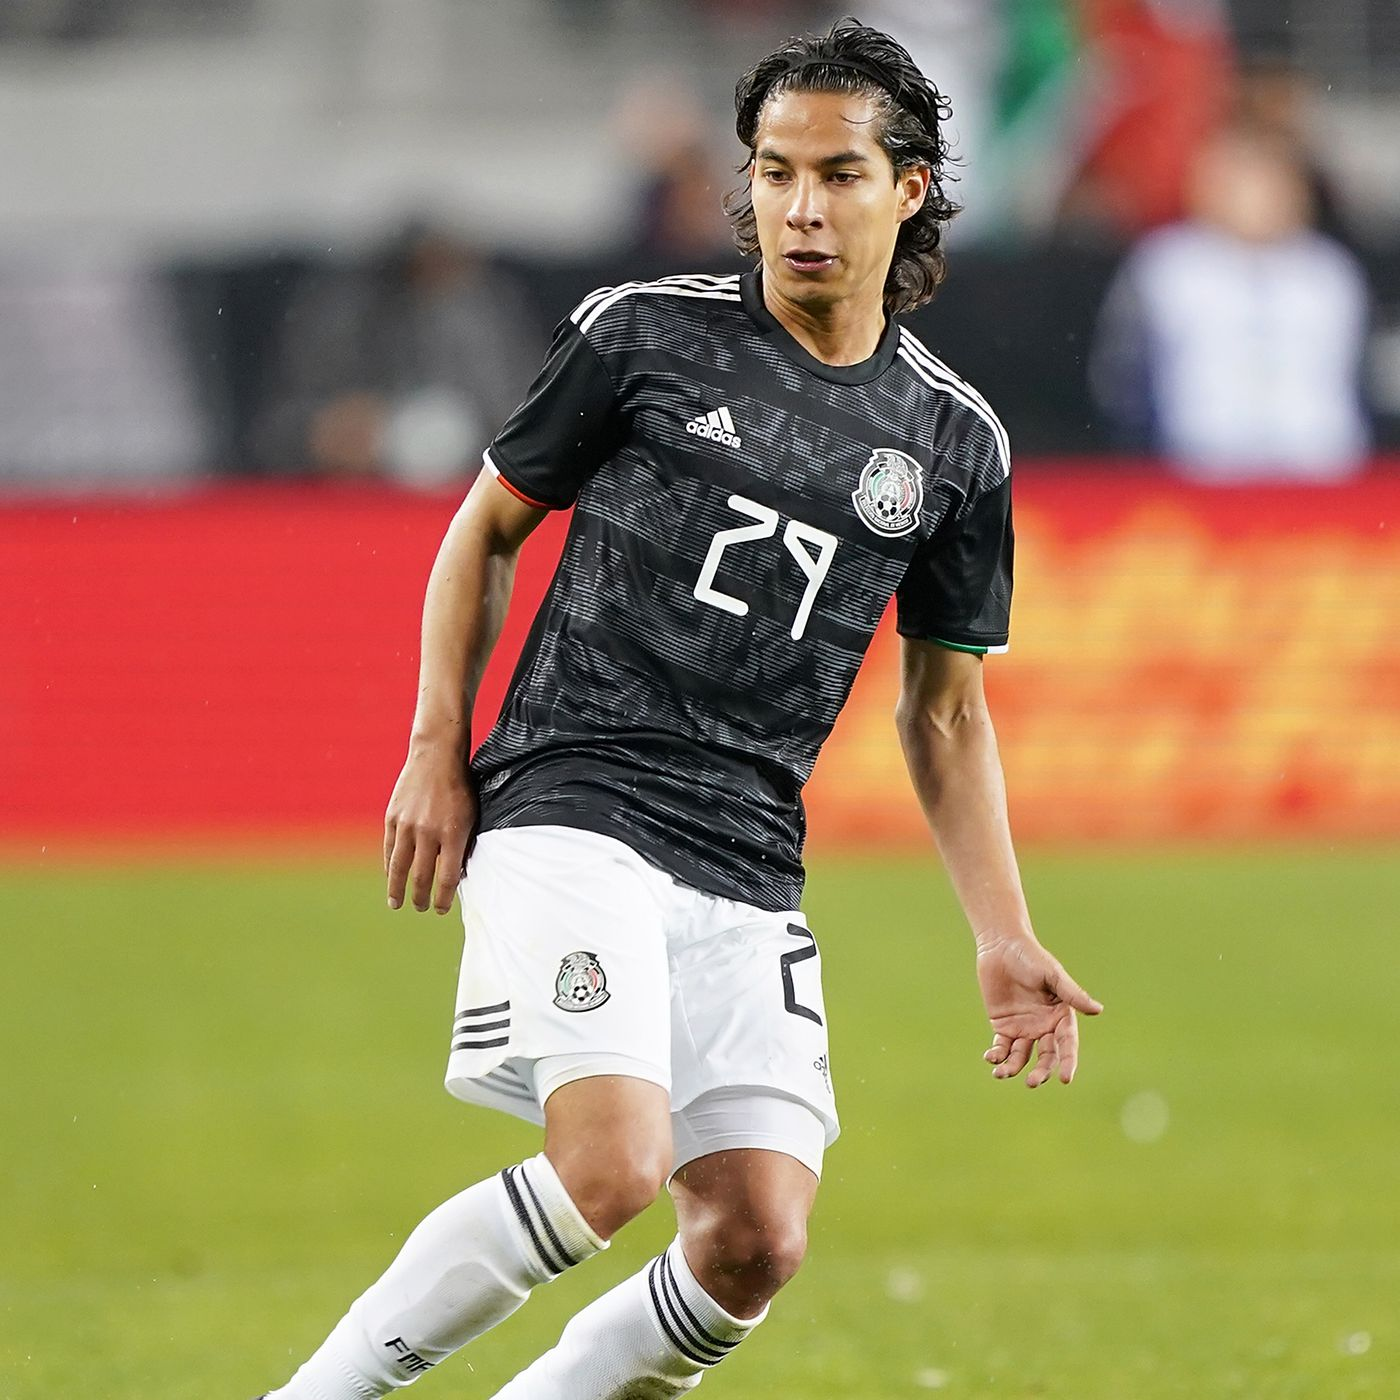 timeless design f95a3 0c164 With Diego Lainez but no Jonathan Gonzalez, Mexico announce ...